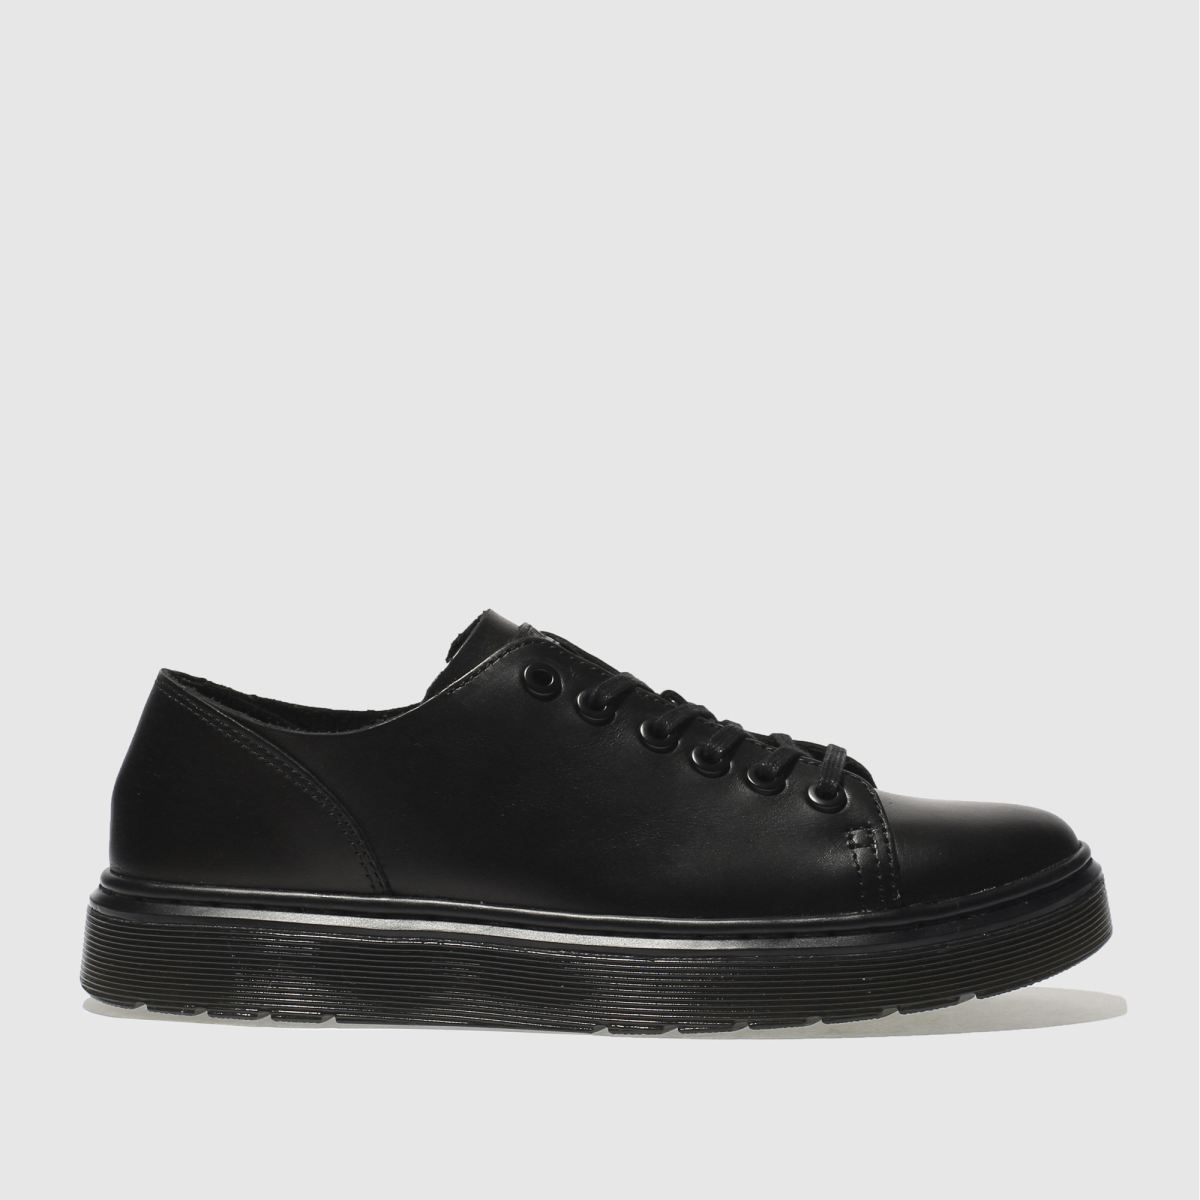 dr martens black dante 6 eye shoe flat shoes